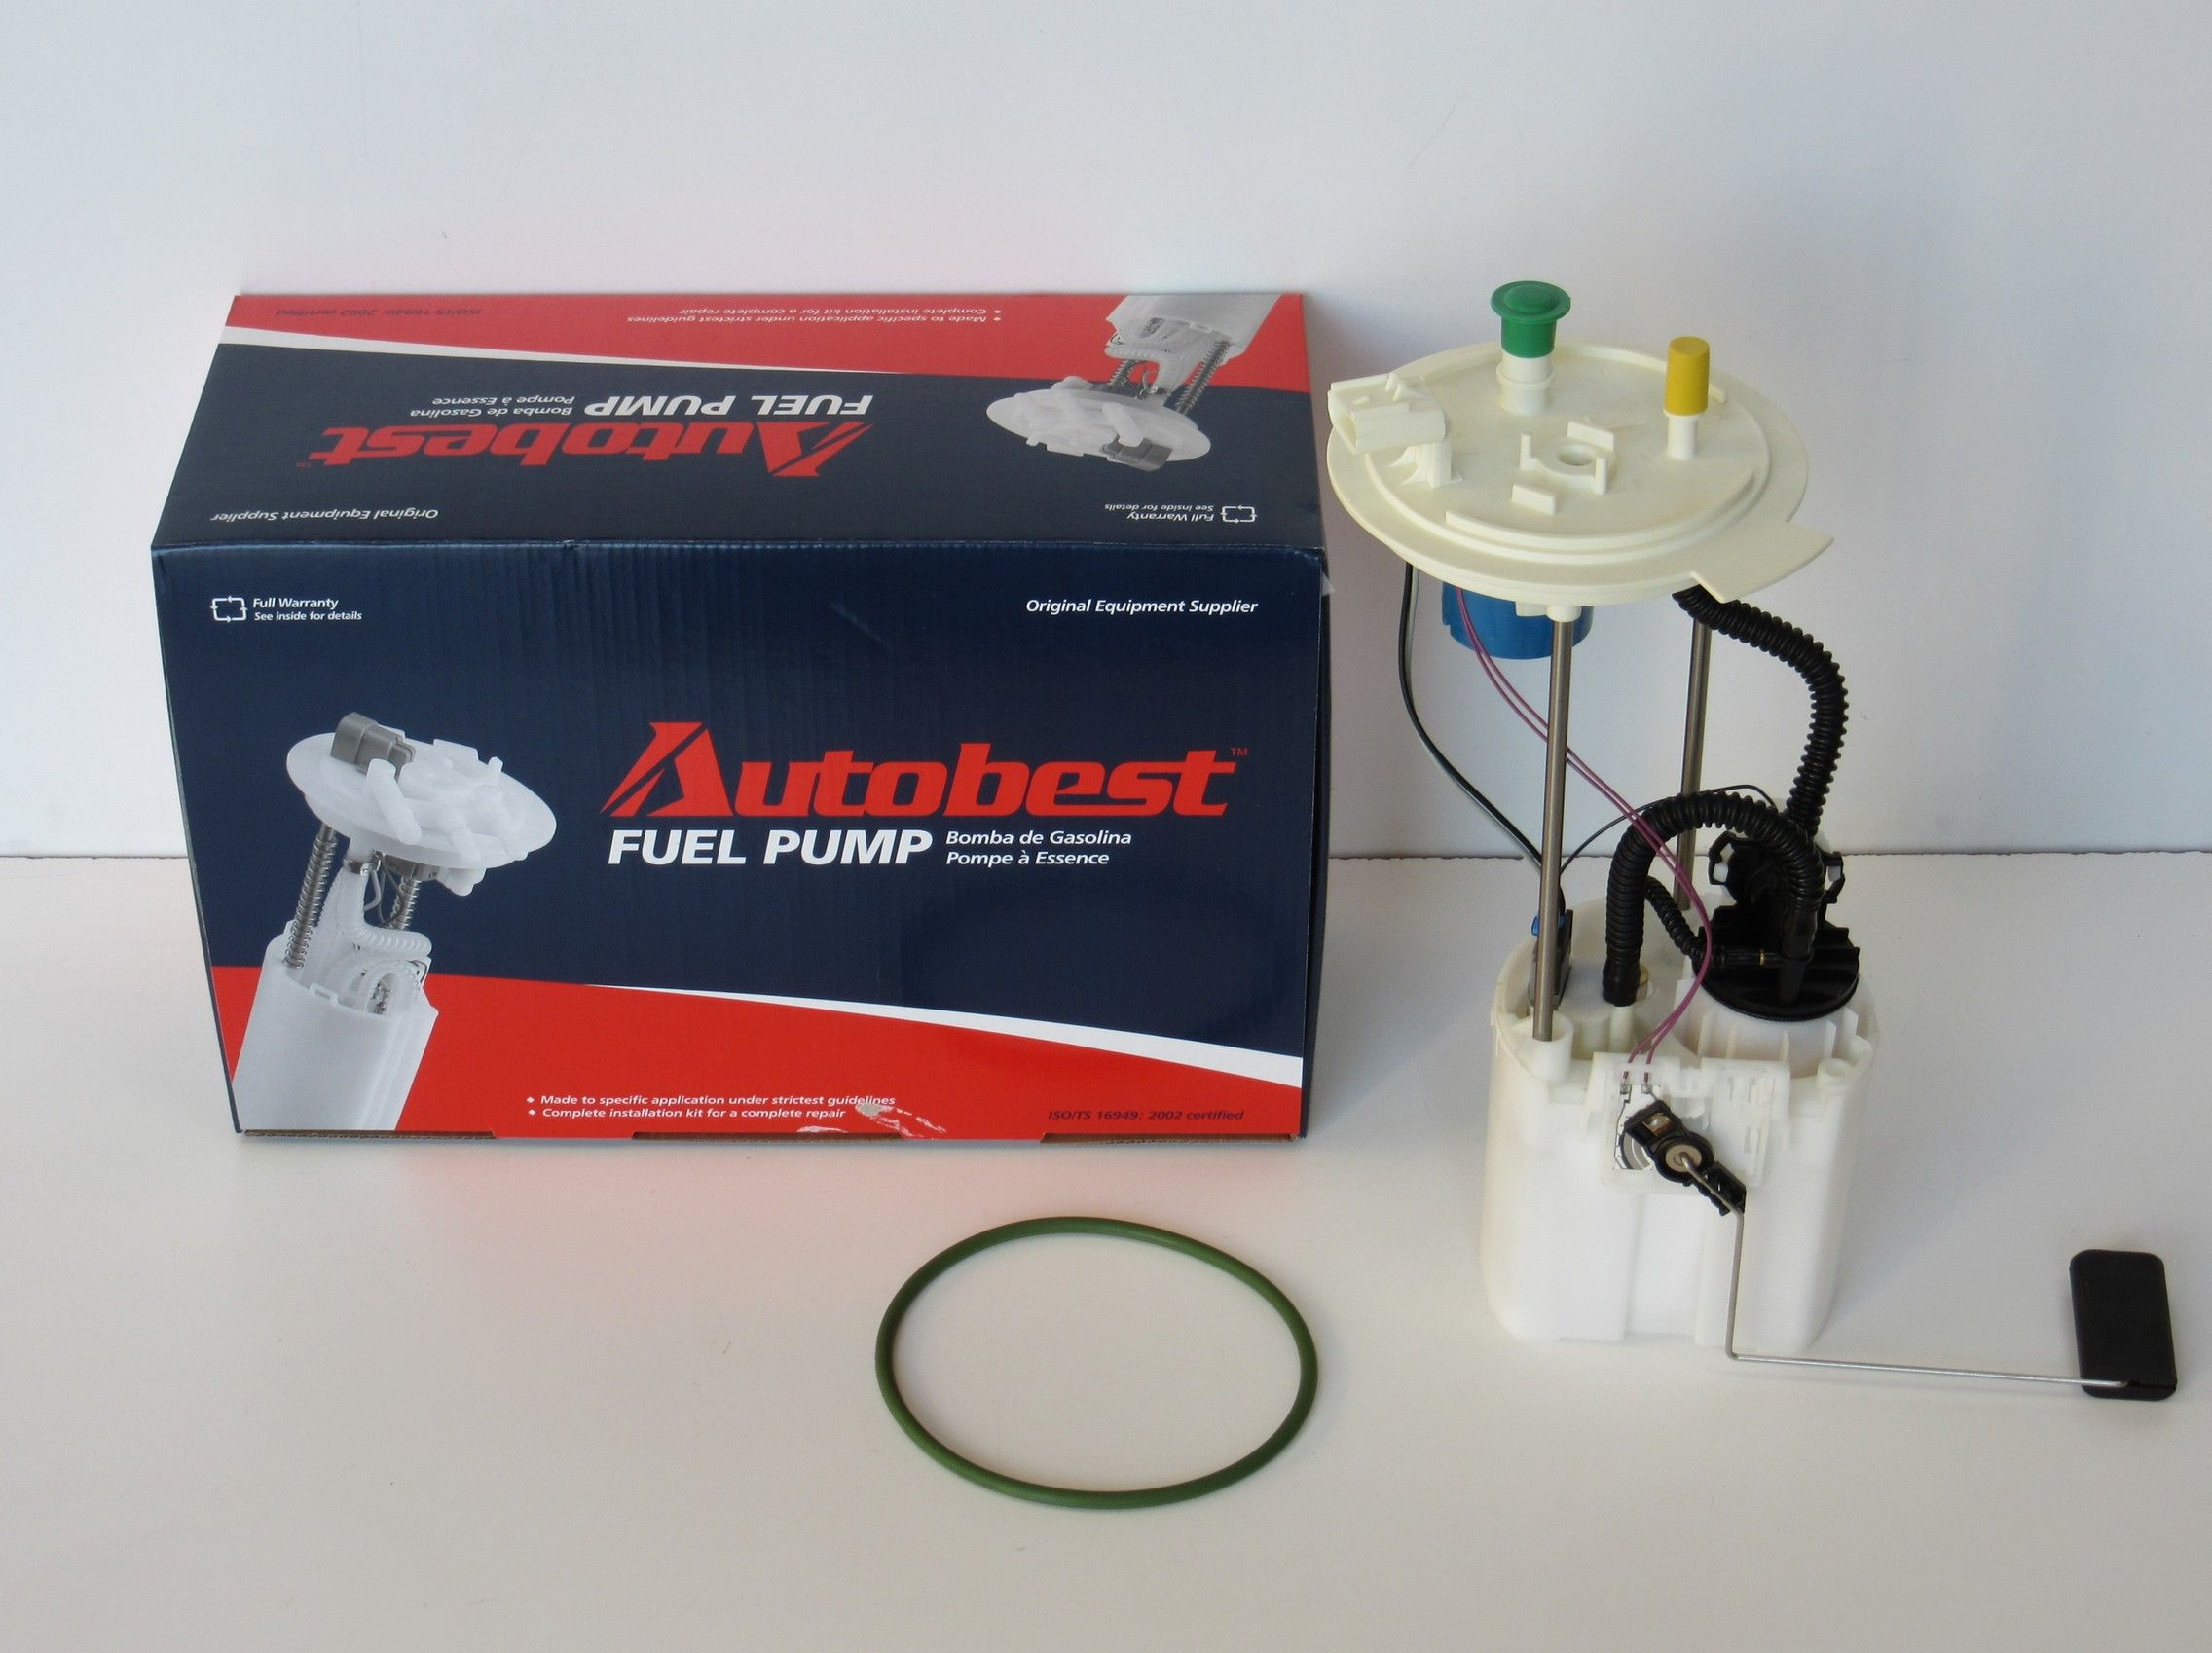 Ford F-150 Fuel Pump Module Assembly Replacement (Airtex